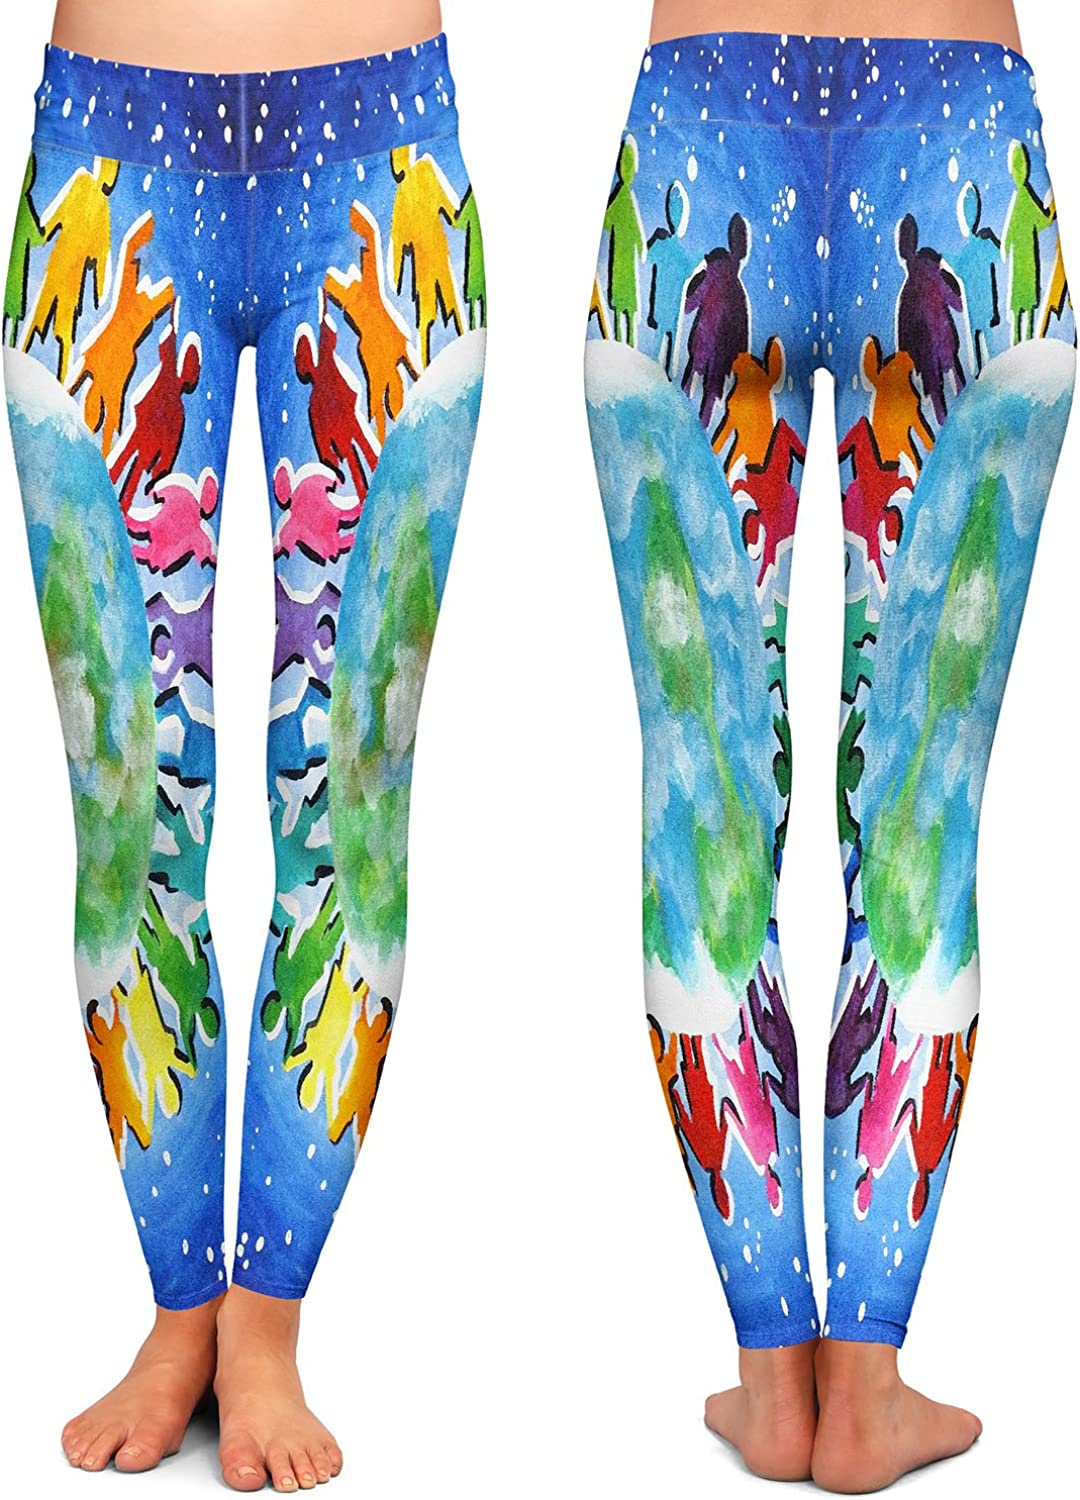 Athletic Yoga Leggings from DiaNoche by nJoy Art The World is My Playground